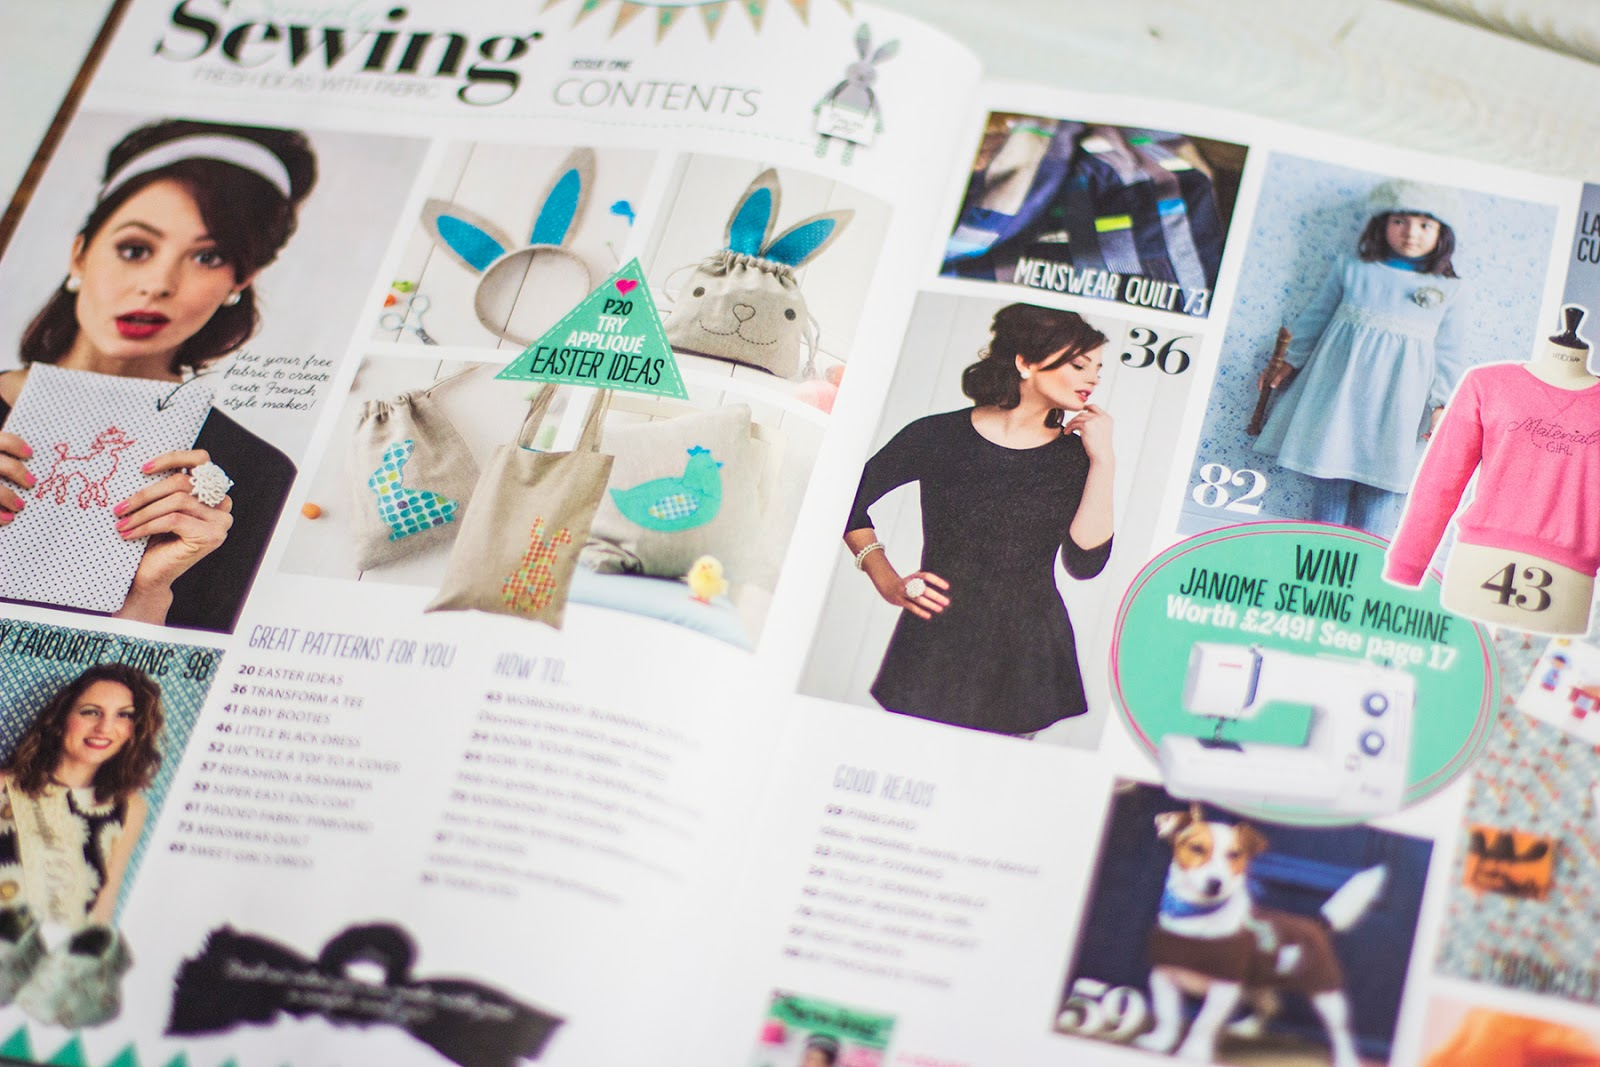 Live it love it make it february 2015 a good variety of clothing home sewing and crafty sewing projects make the first issue a nicely rounded overview of what is to come in future issues jeuxipadfo Image collections